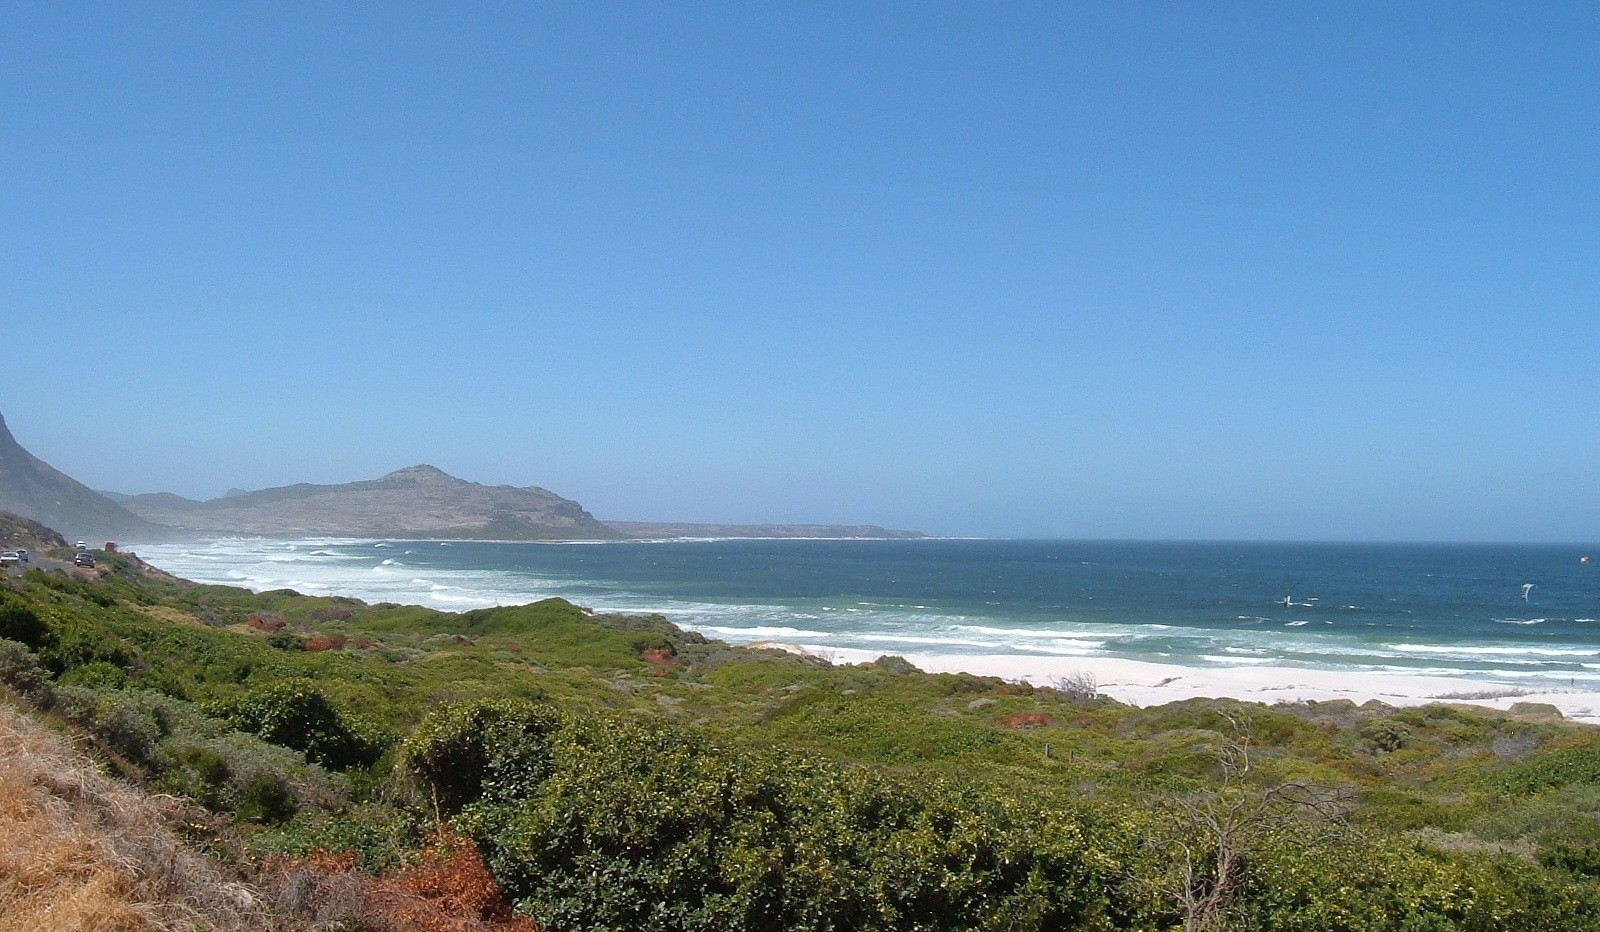 Drifter's photo of Kommetjie